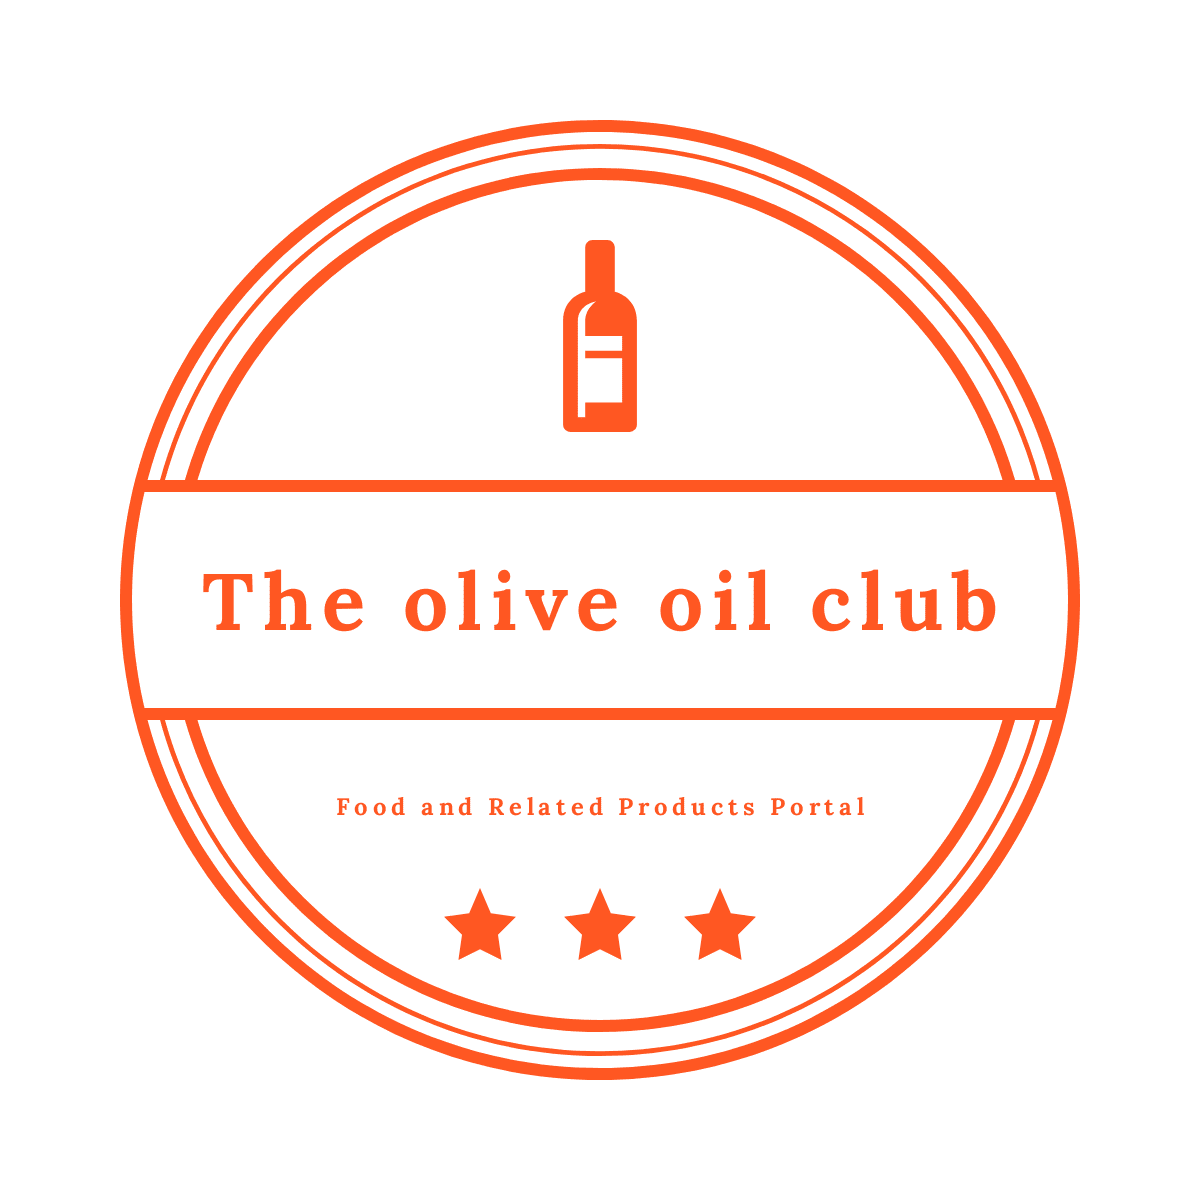 Theoliveoilclub